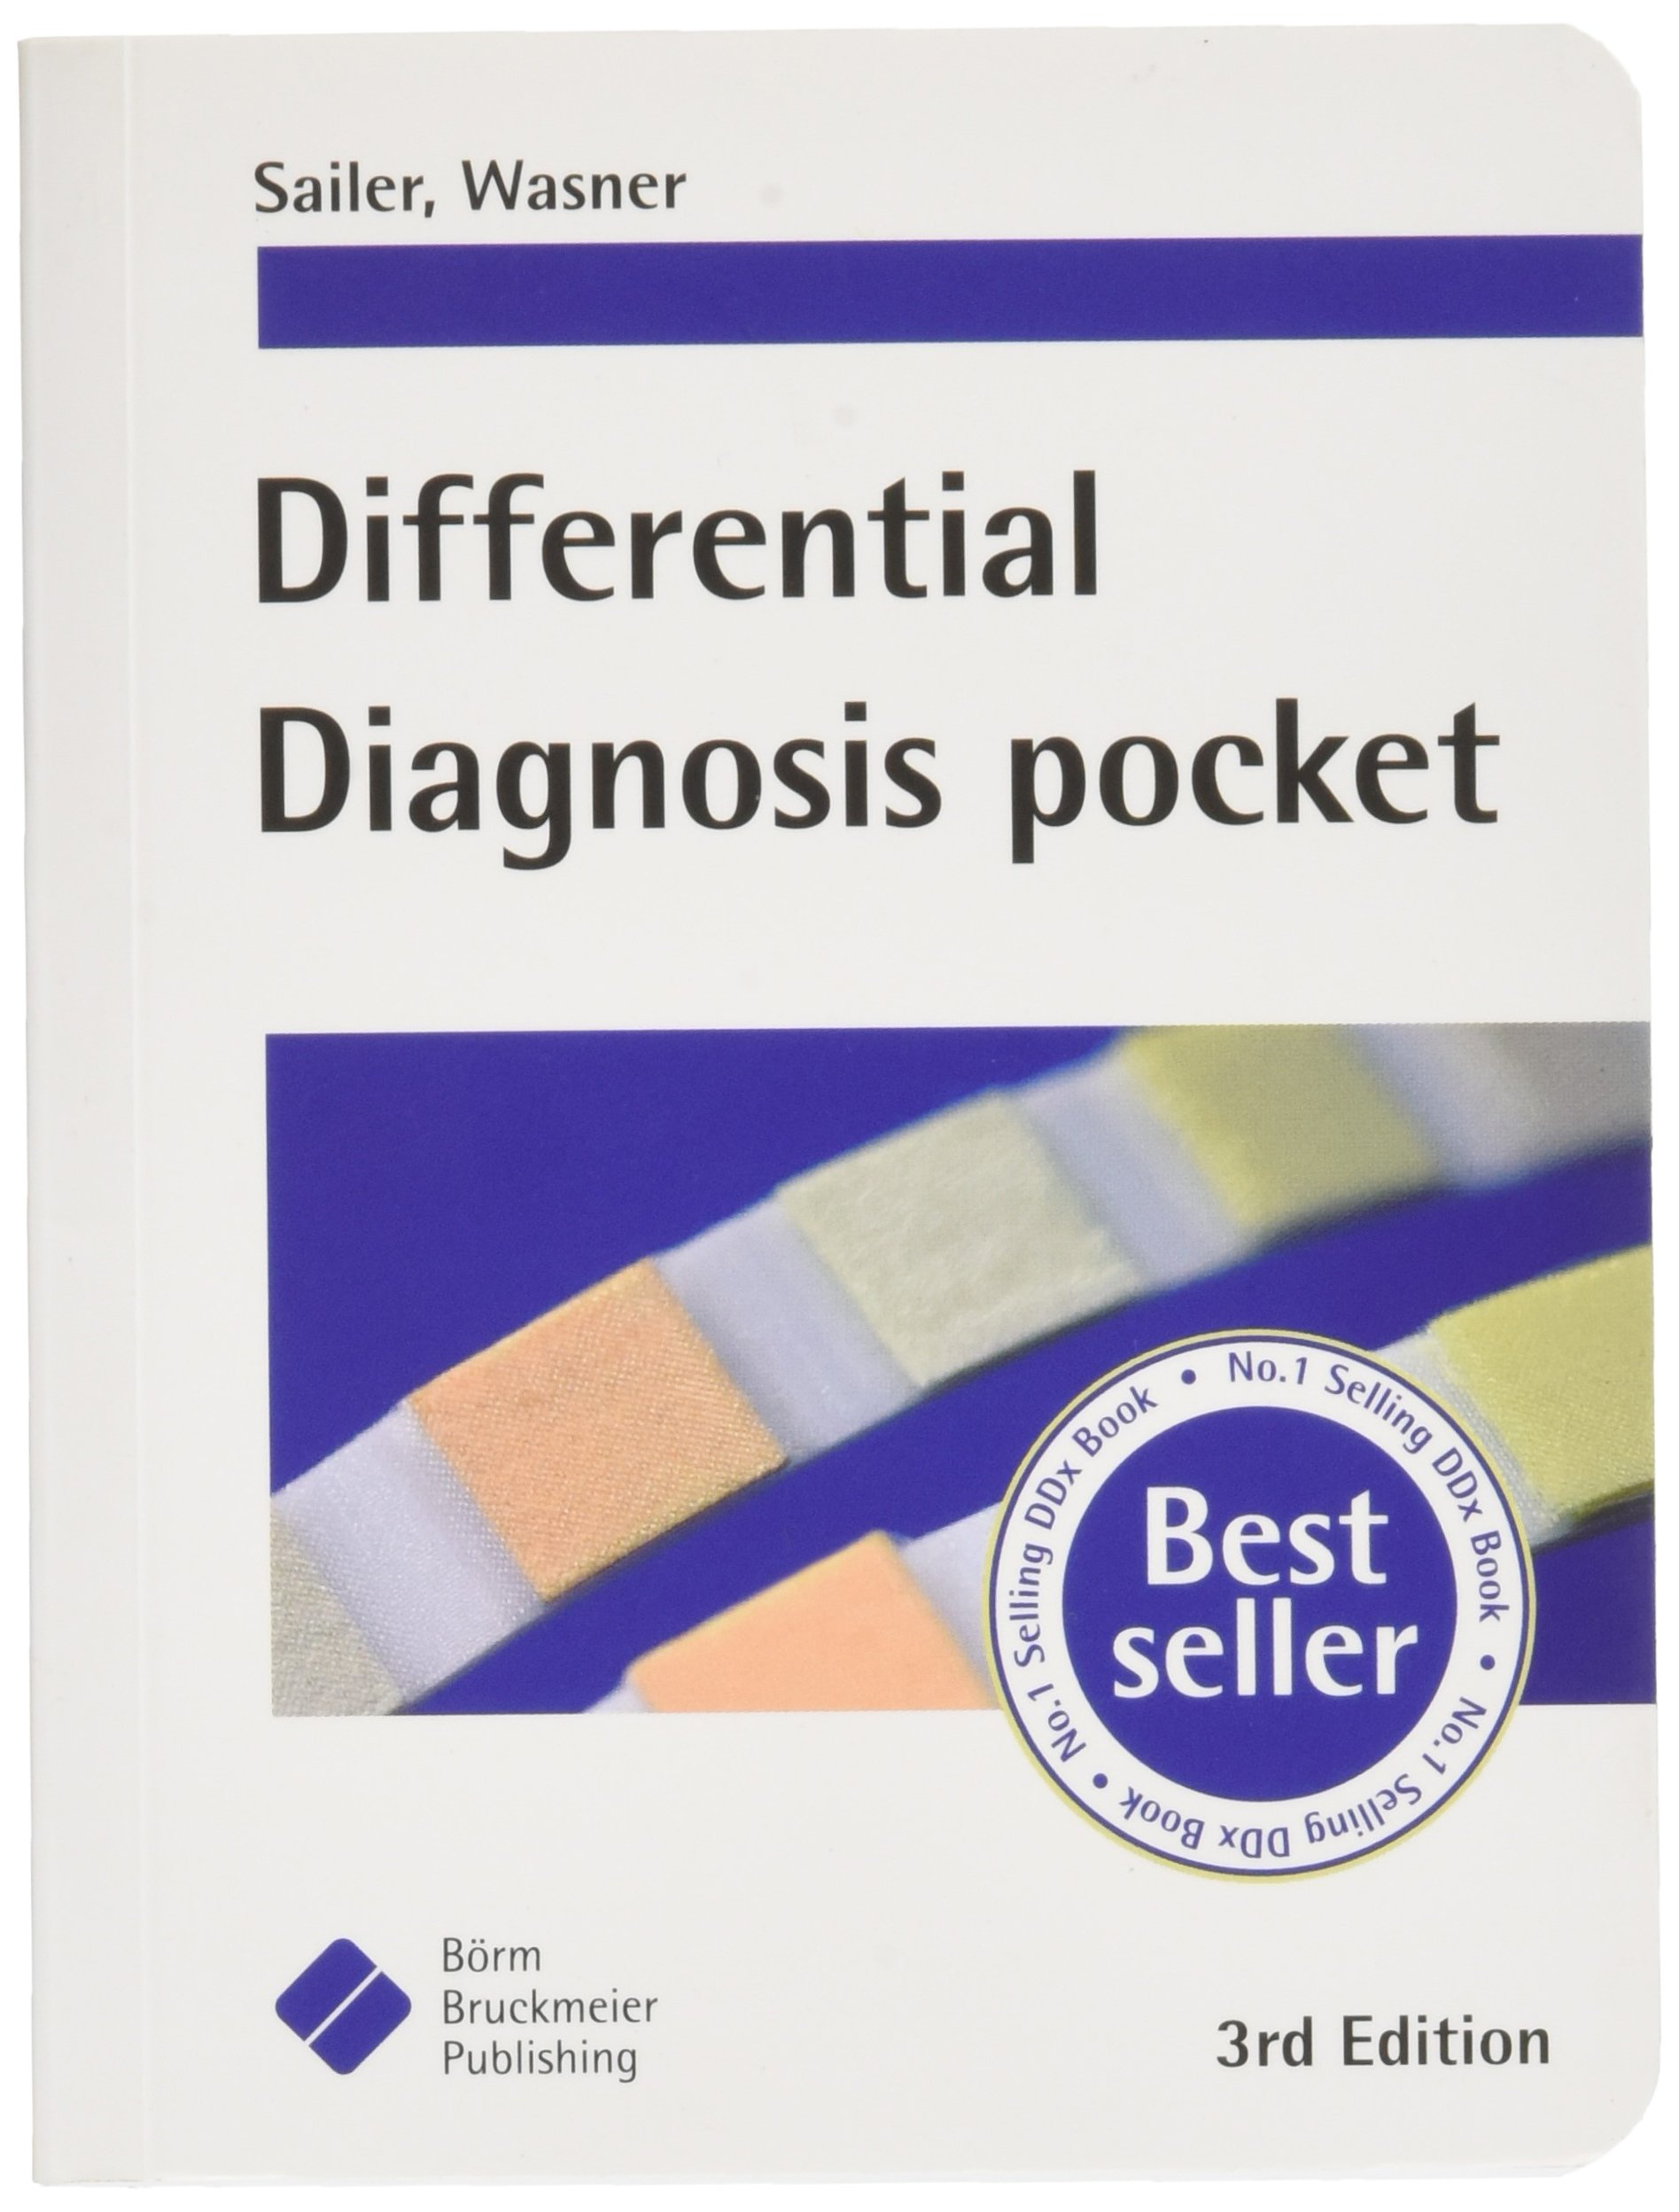 Differential Diagnosis Pocket: Clinical Reference Guide (Pocket (Borm Bruckmeier Publishing))